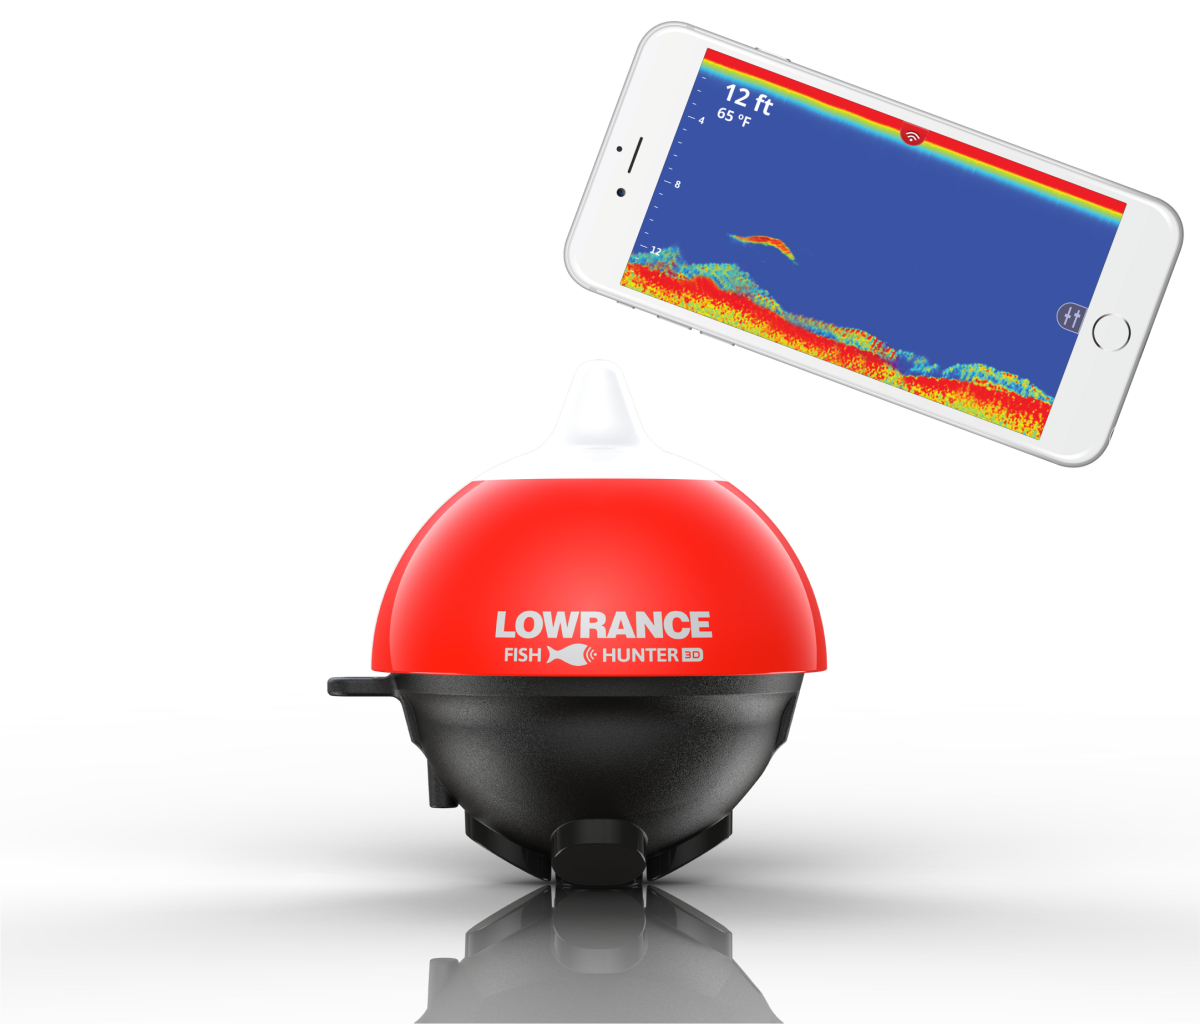 Starting at $149 – www.lowrance.com